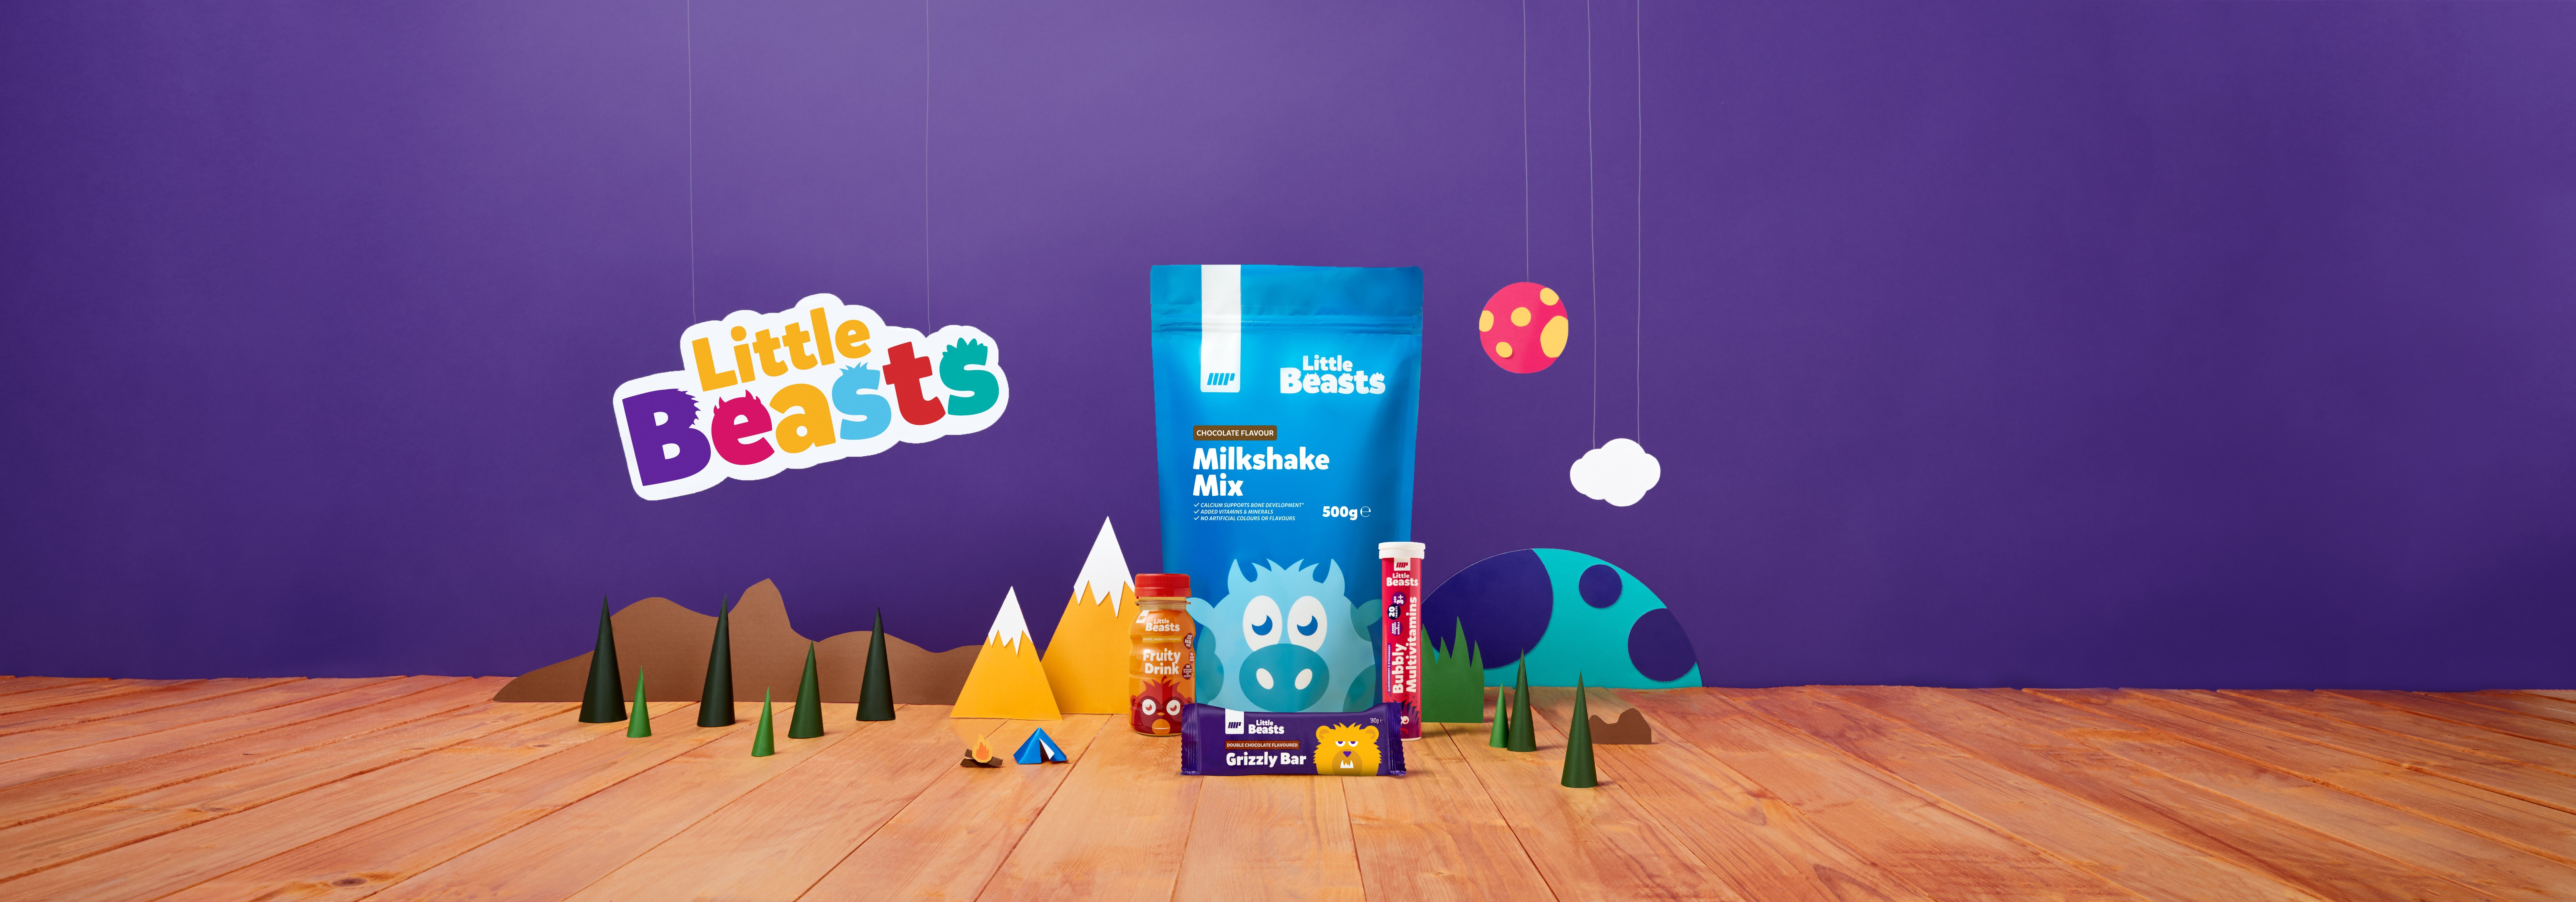 MyProtein for kids! The new nutrition